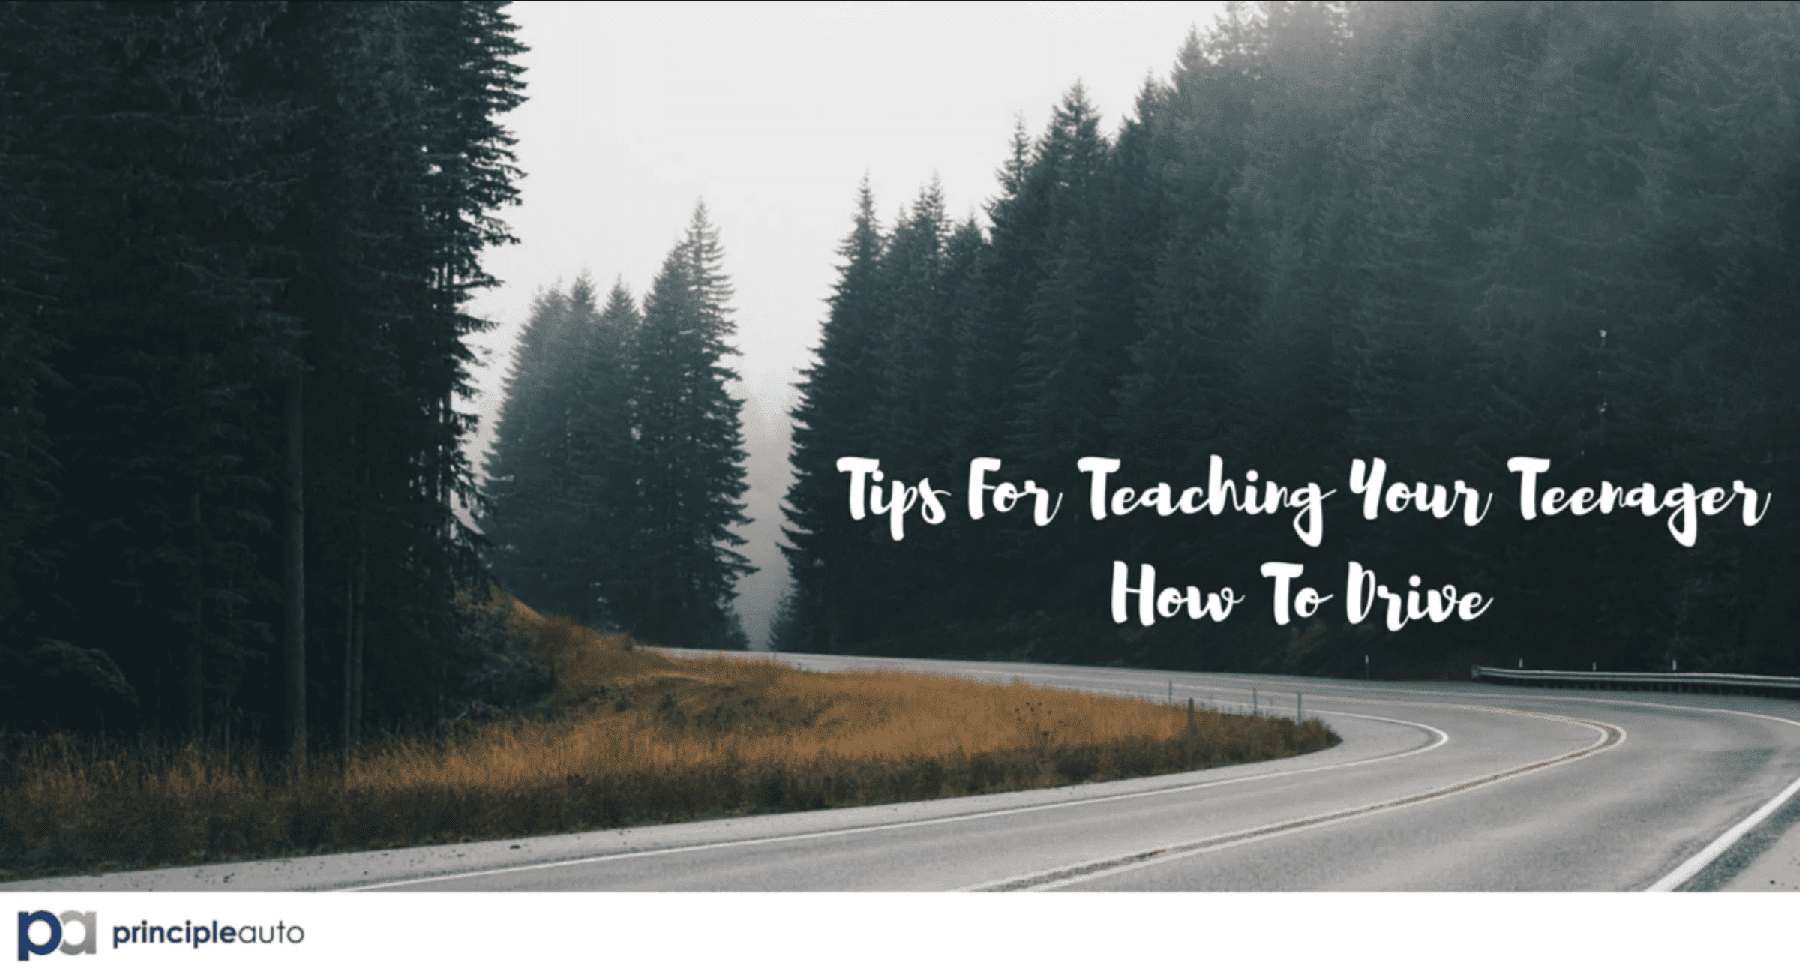 Tips for Teaching Your Teenage How to Drive